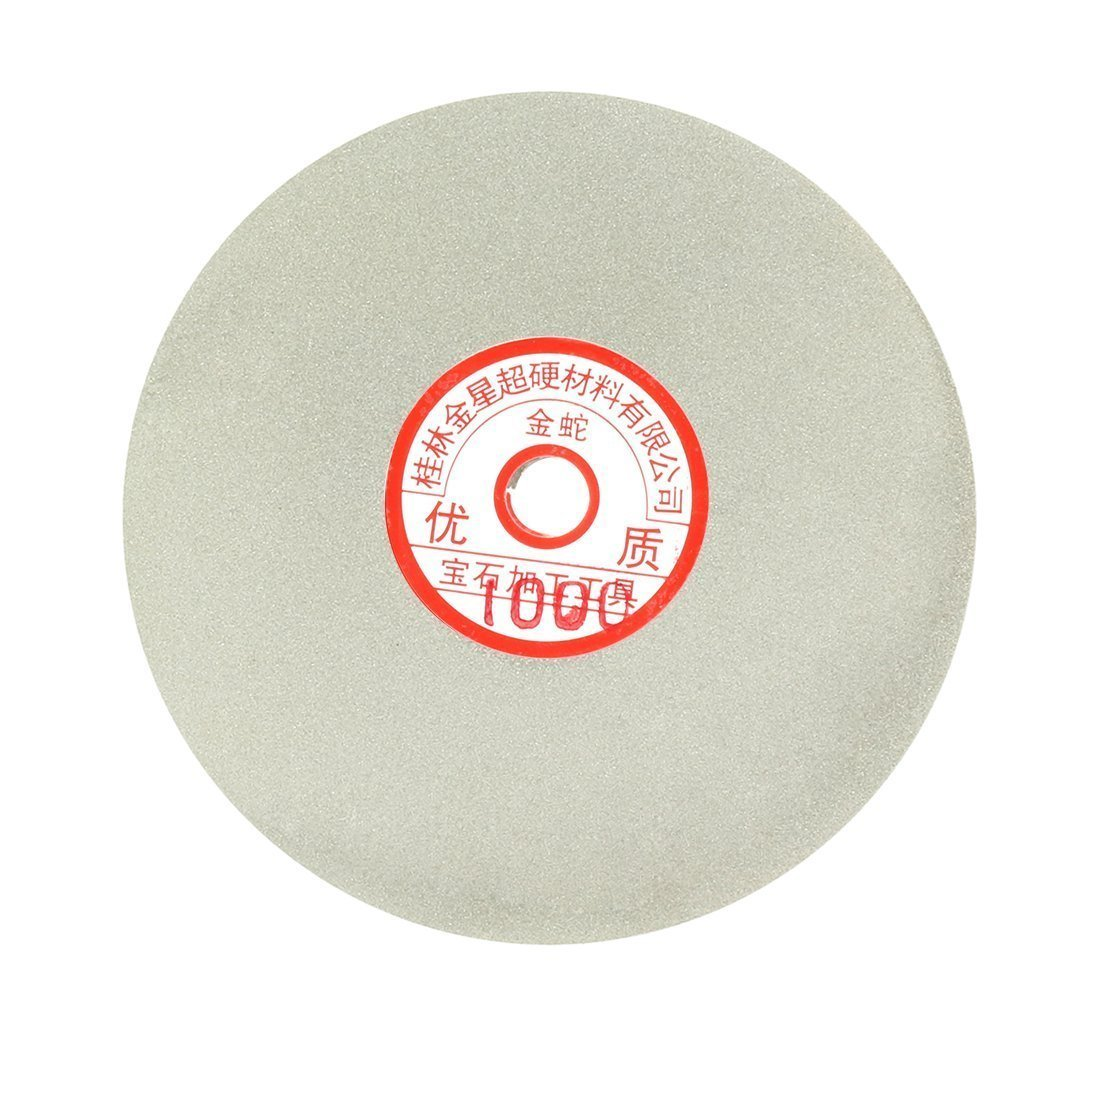 Sourcingmap 6-inch Grit 120 Diamond Coated Flat Lap Wheel Grinding Sanding Polishing Disc a17030900ux1362